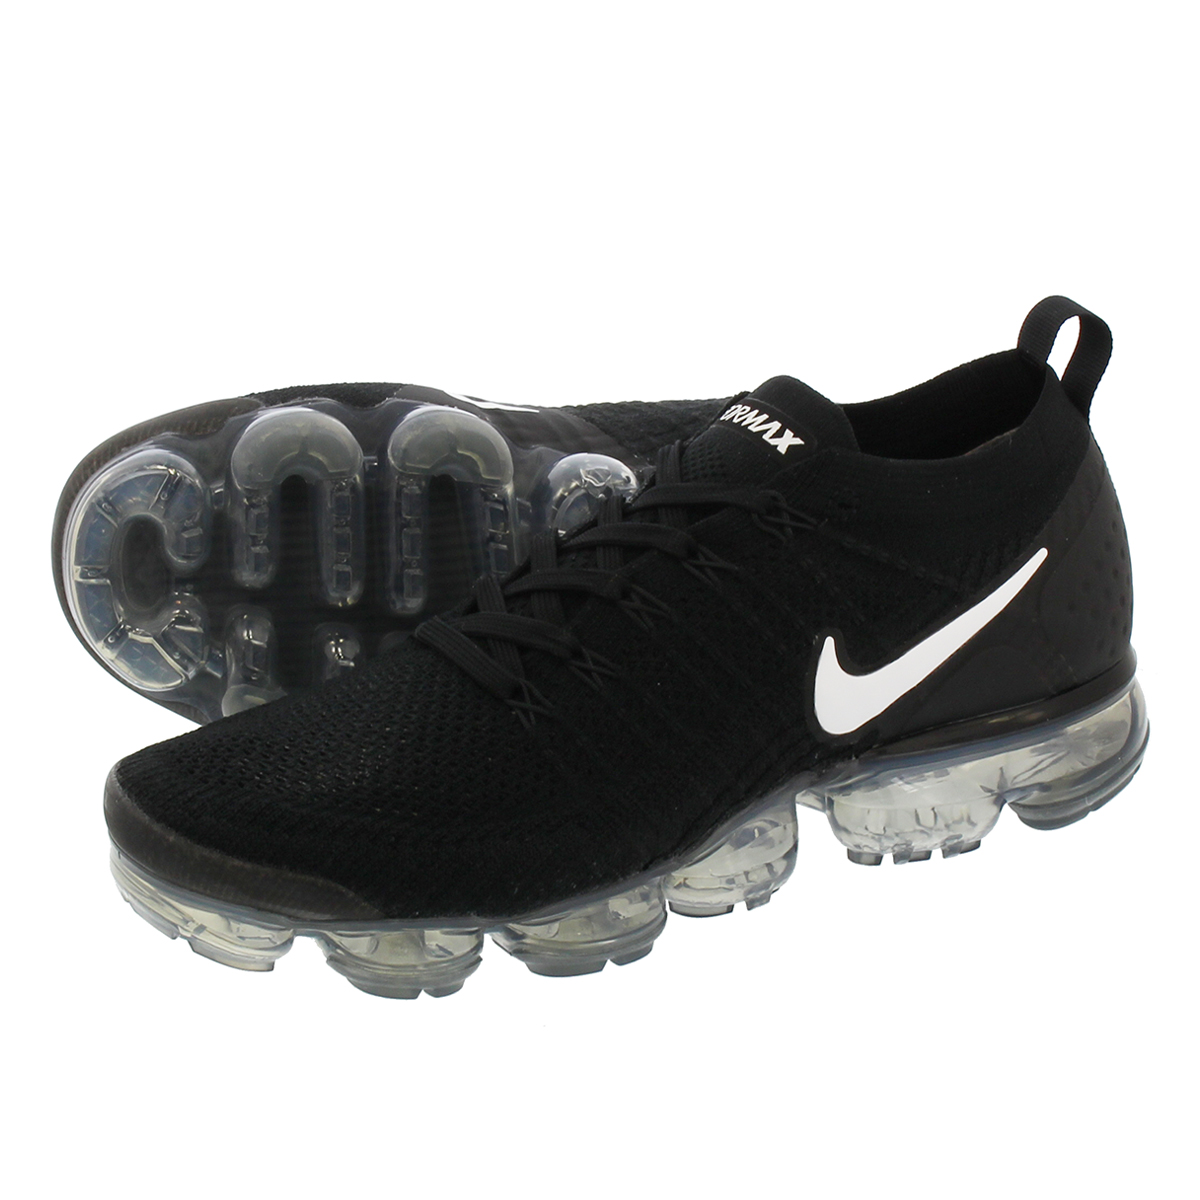 3a422a9a06731 NIKE AIR VAPORMAX FLYKNIT 2 Nike vapor max fried food knit 2  BLACK WHITE DARK GREY METALLIC SILVER